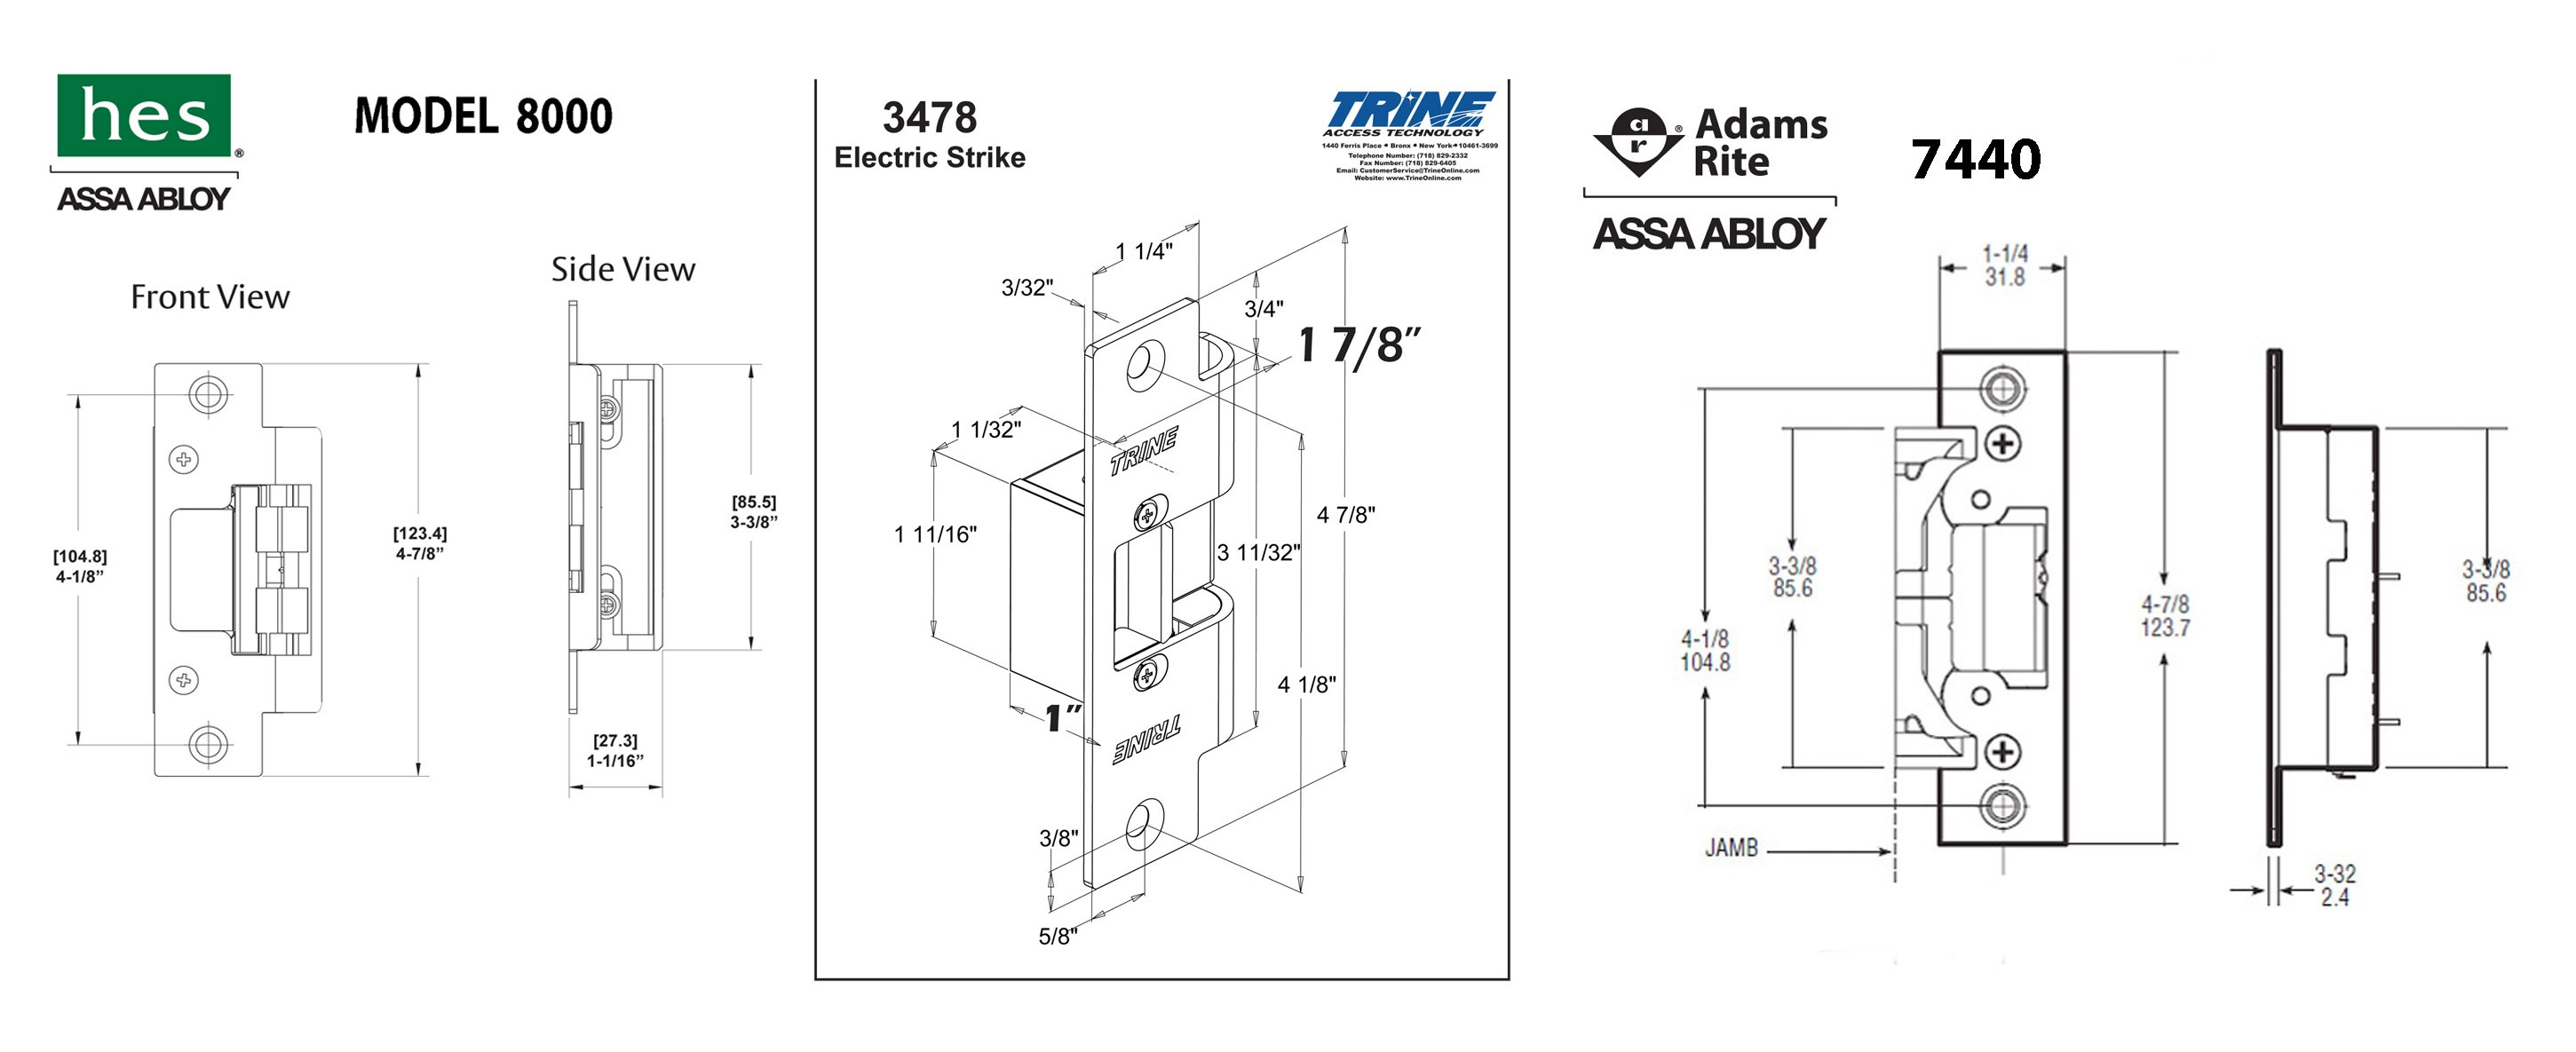 Hes 5000 Series Electric Strike Wiring Diagram